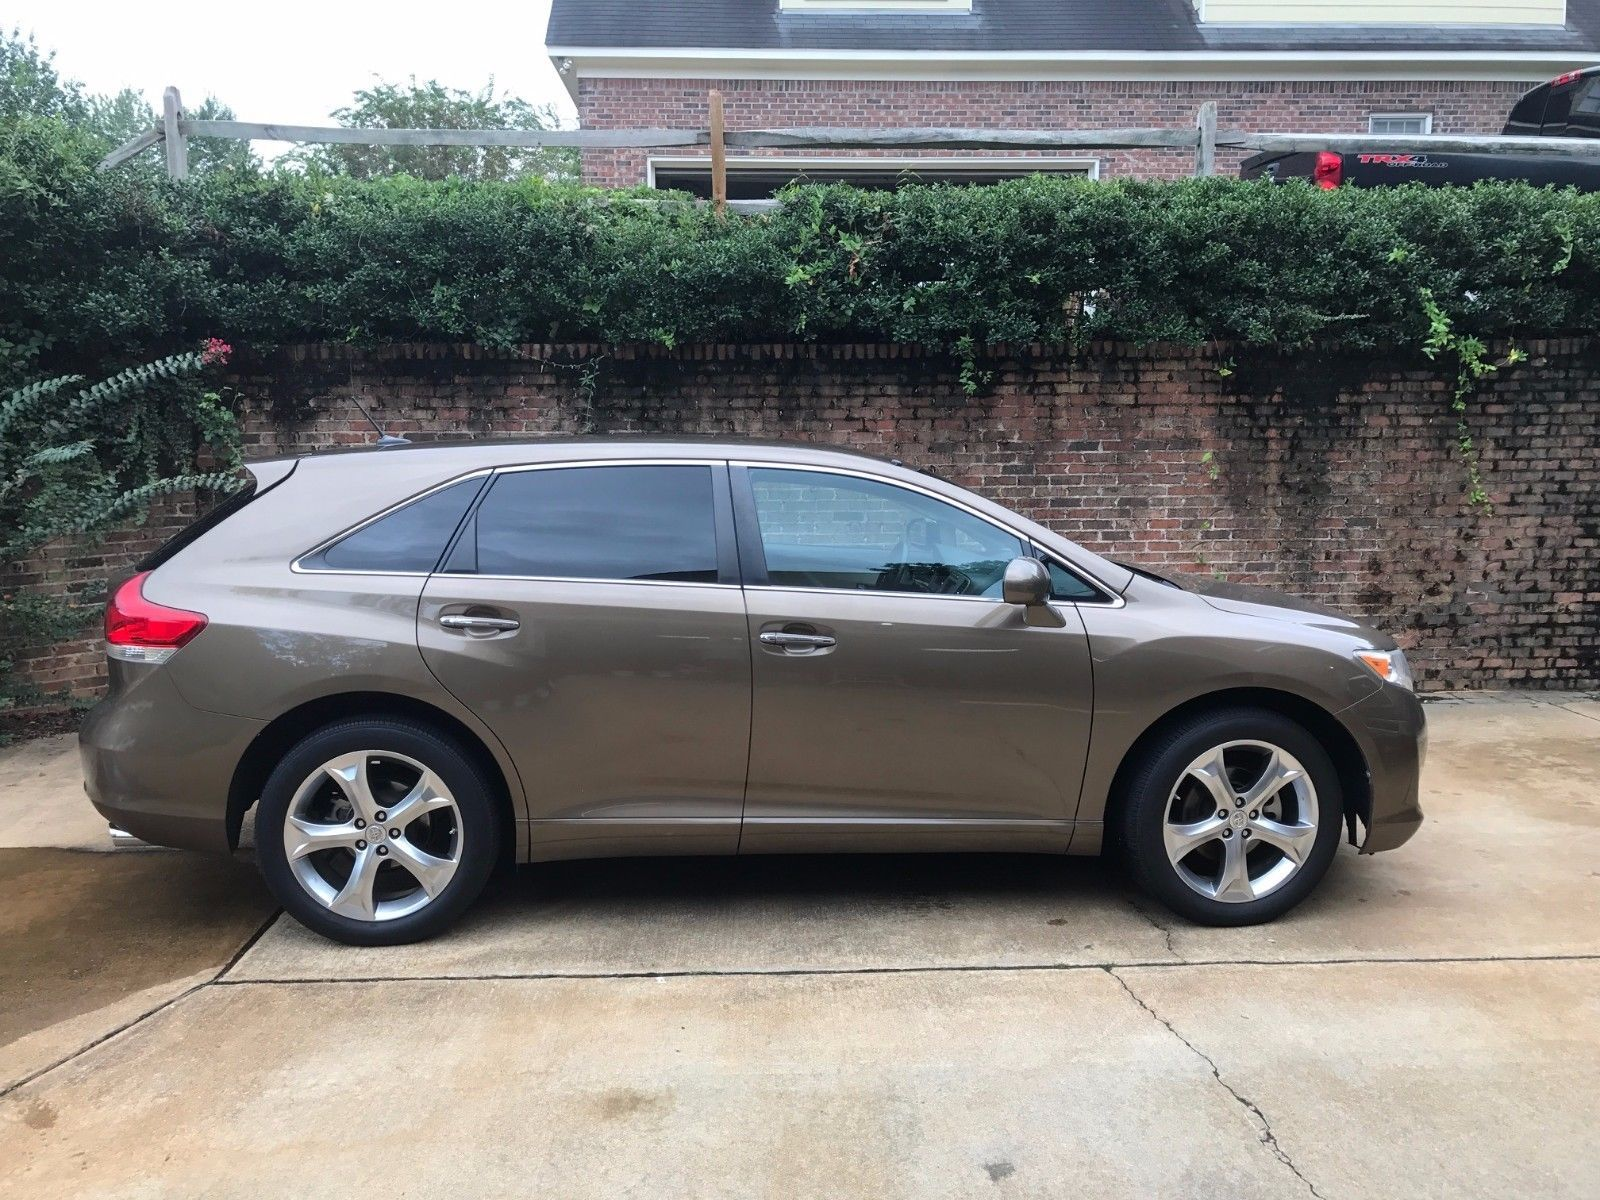 Cool Awesome 2011 Toyota Venza Base Sport Utility 4 Door 2011 Toyota